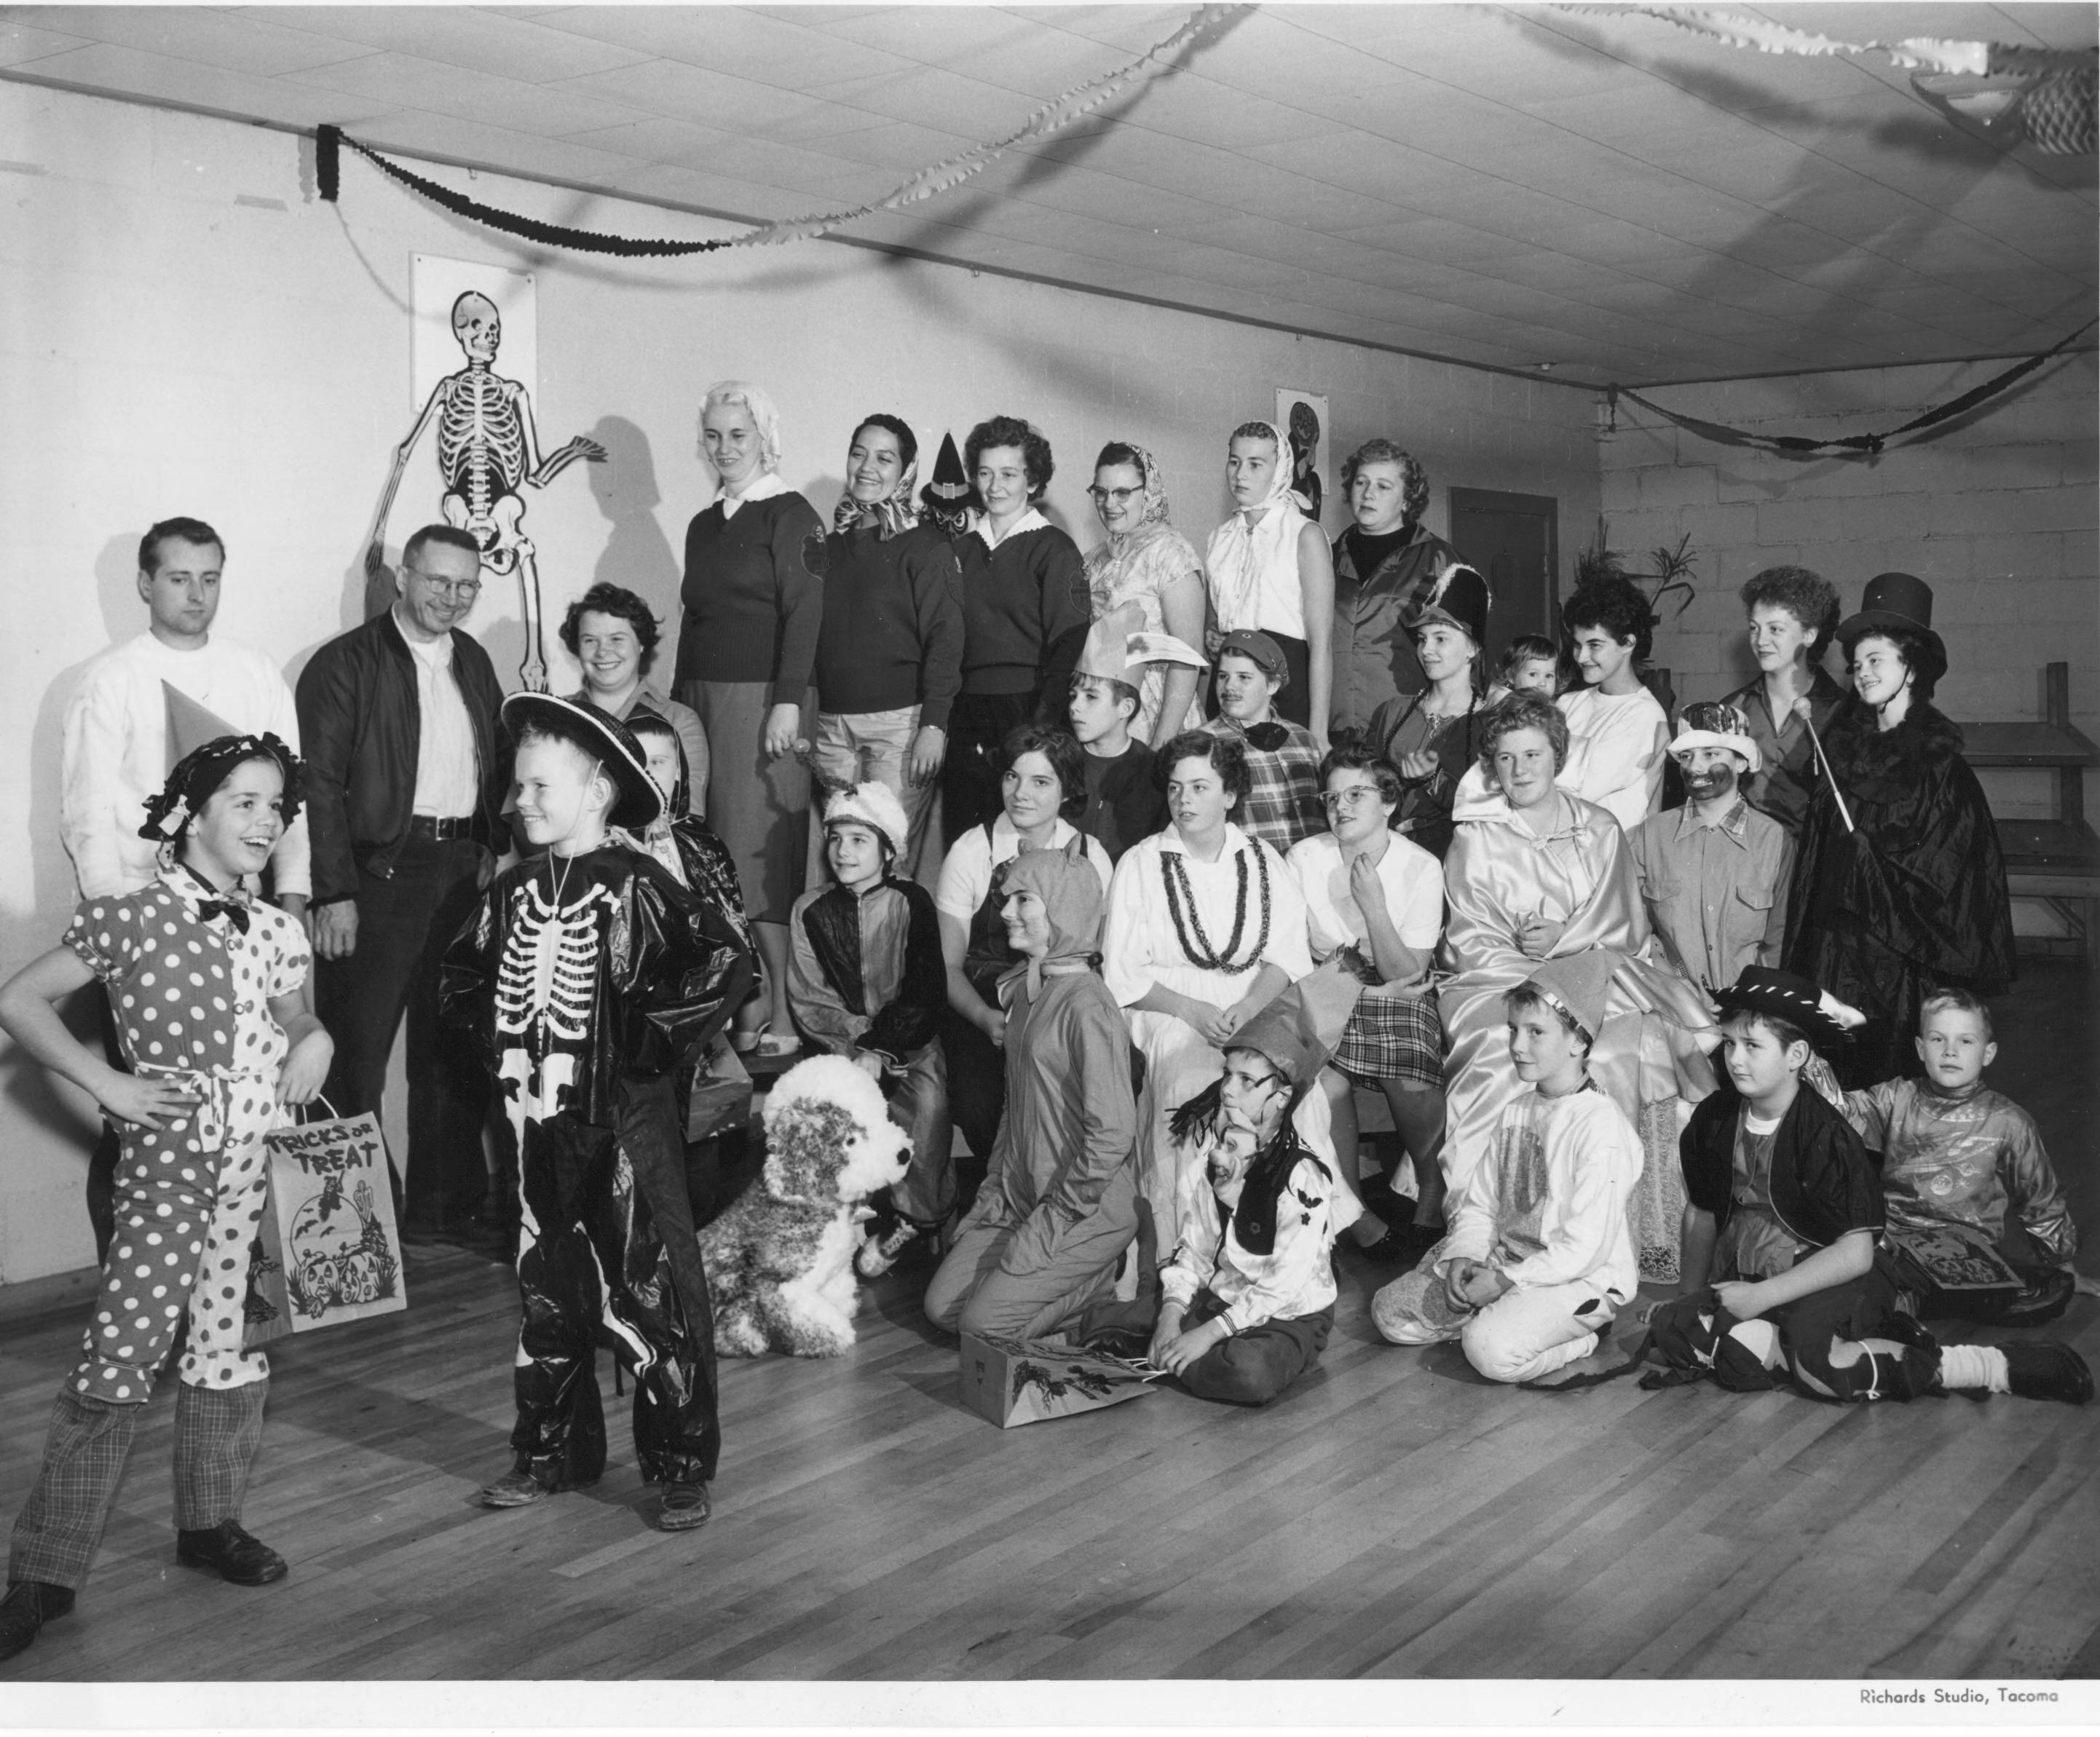 On October 31, 1959, two boys, Patrick on the left and David on the right, modeled their costumes for a group of approximately 20 children and assorted adults at a Halloween party held at the Blue Barons Motorcycle Clubhouse, 5623 South Monroe Street. David is dressed in a shiny black skeleton costume topped with a cowboy hat and Patrick wears a clown outfit that is a few sizes too small. The children reside at St. Ann's Home and they are receiving gifts and treats at this party hosted by the Blue Barons. St. Ann's Home was an orphanage located at 6602 Alaska and run by the Sisters of St. Francis.